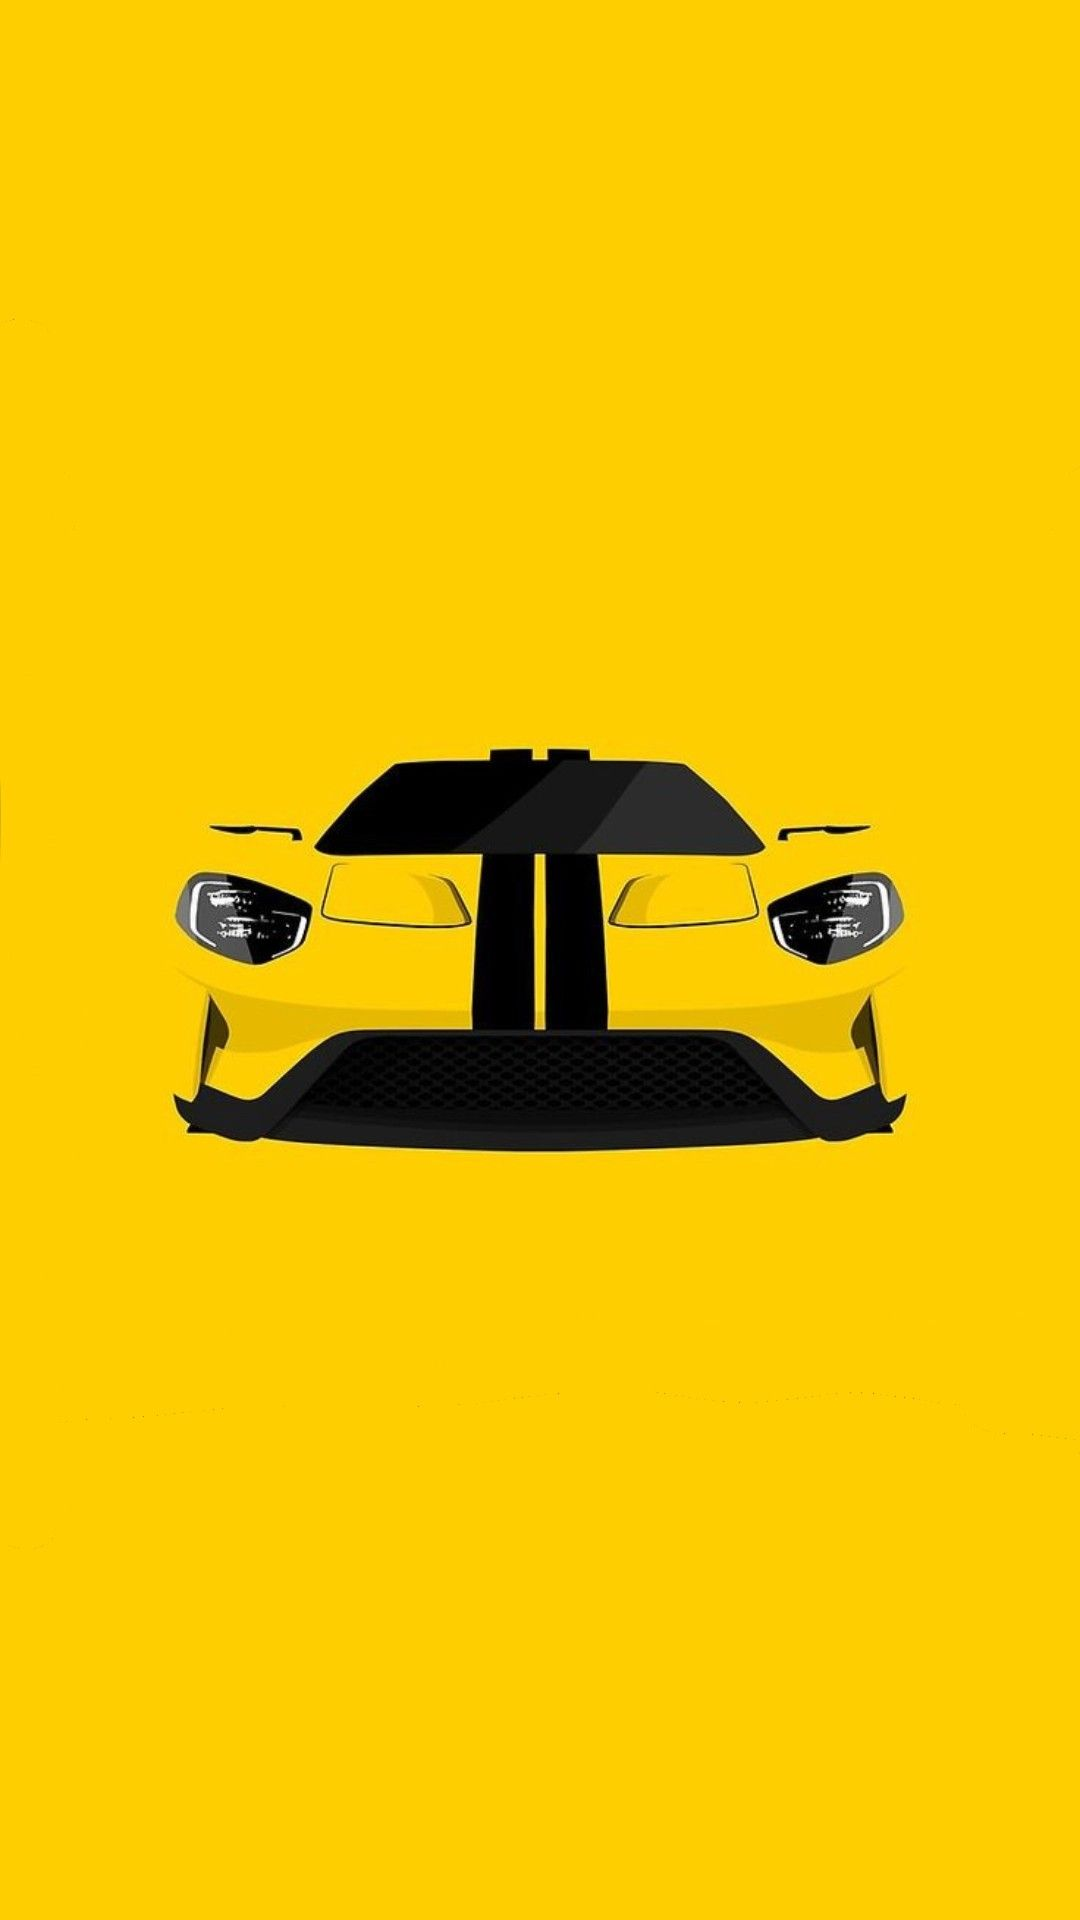 Pin By Bziono On Tapety Retro Cars Ford Gt Car Illustration